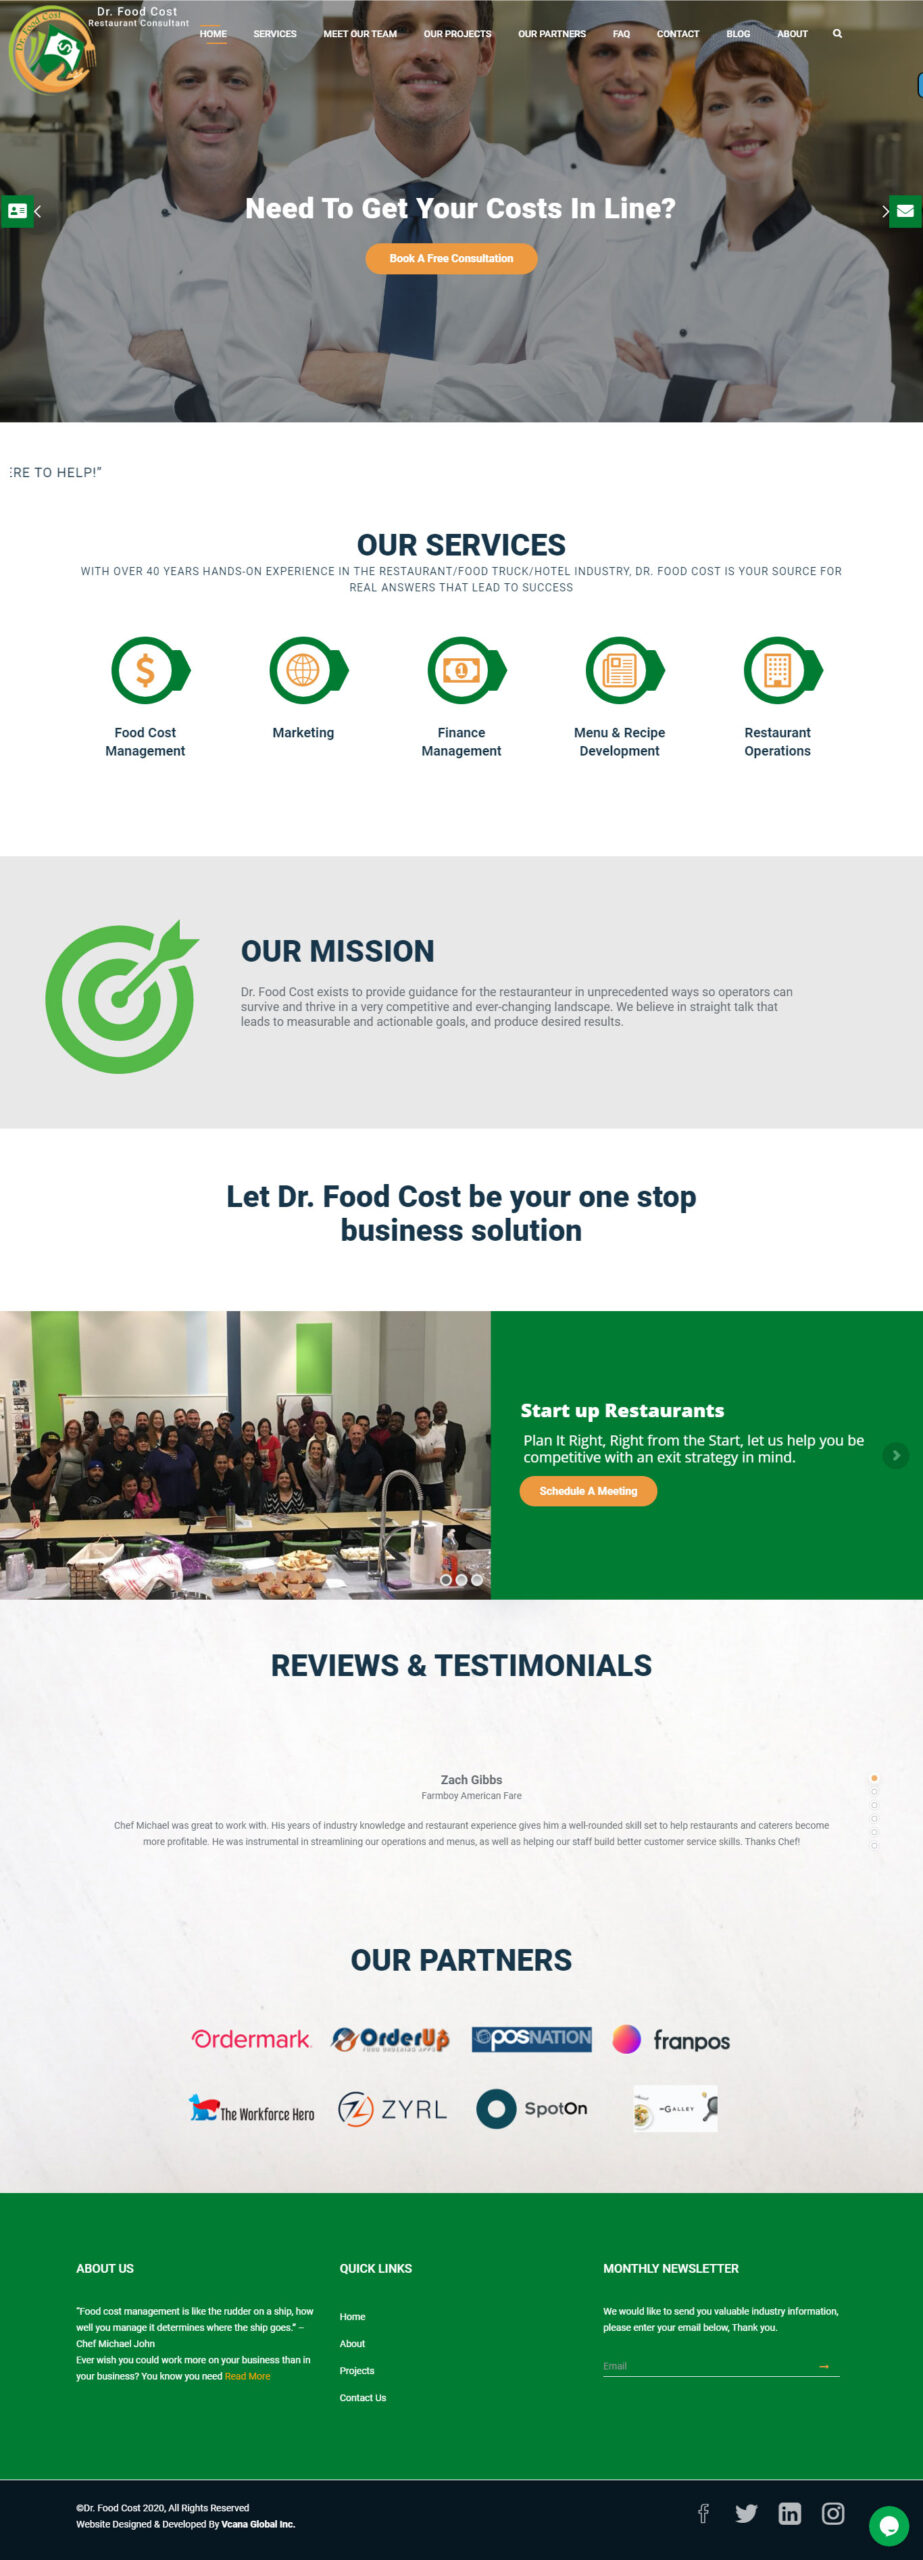 dr food cost - vcana global